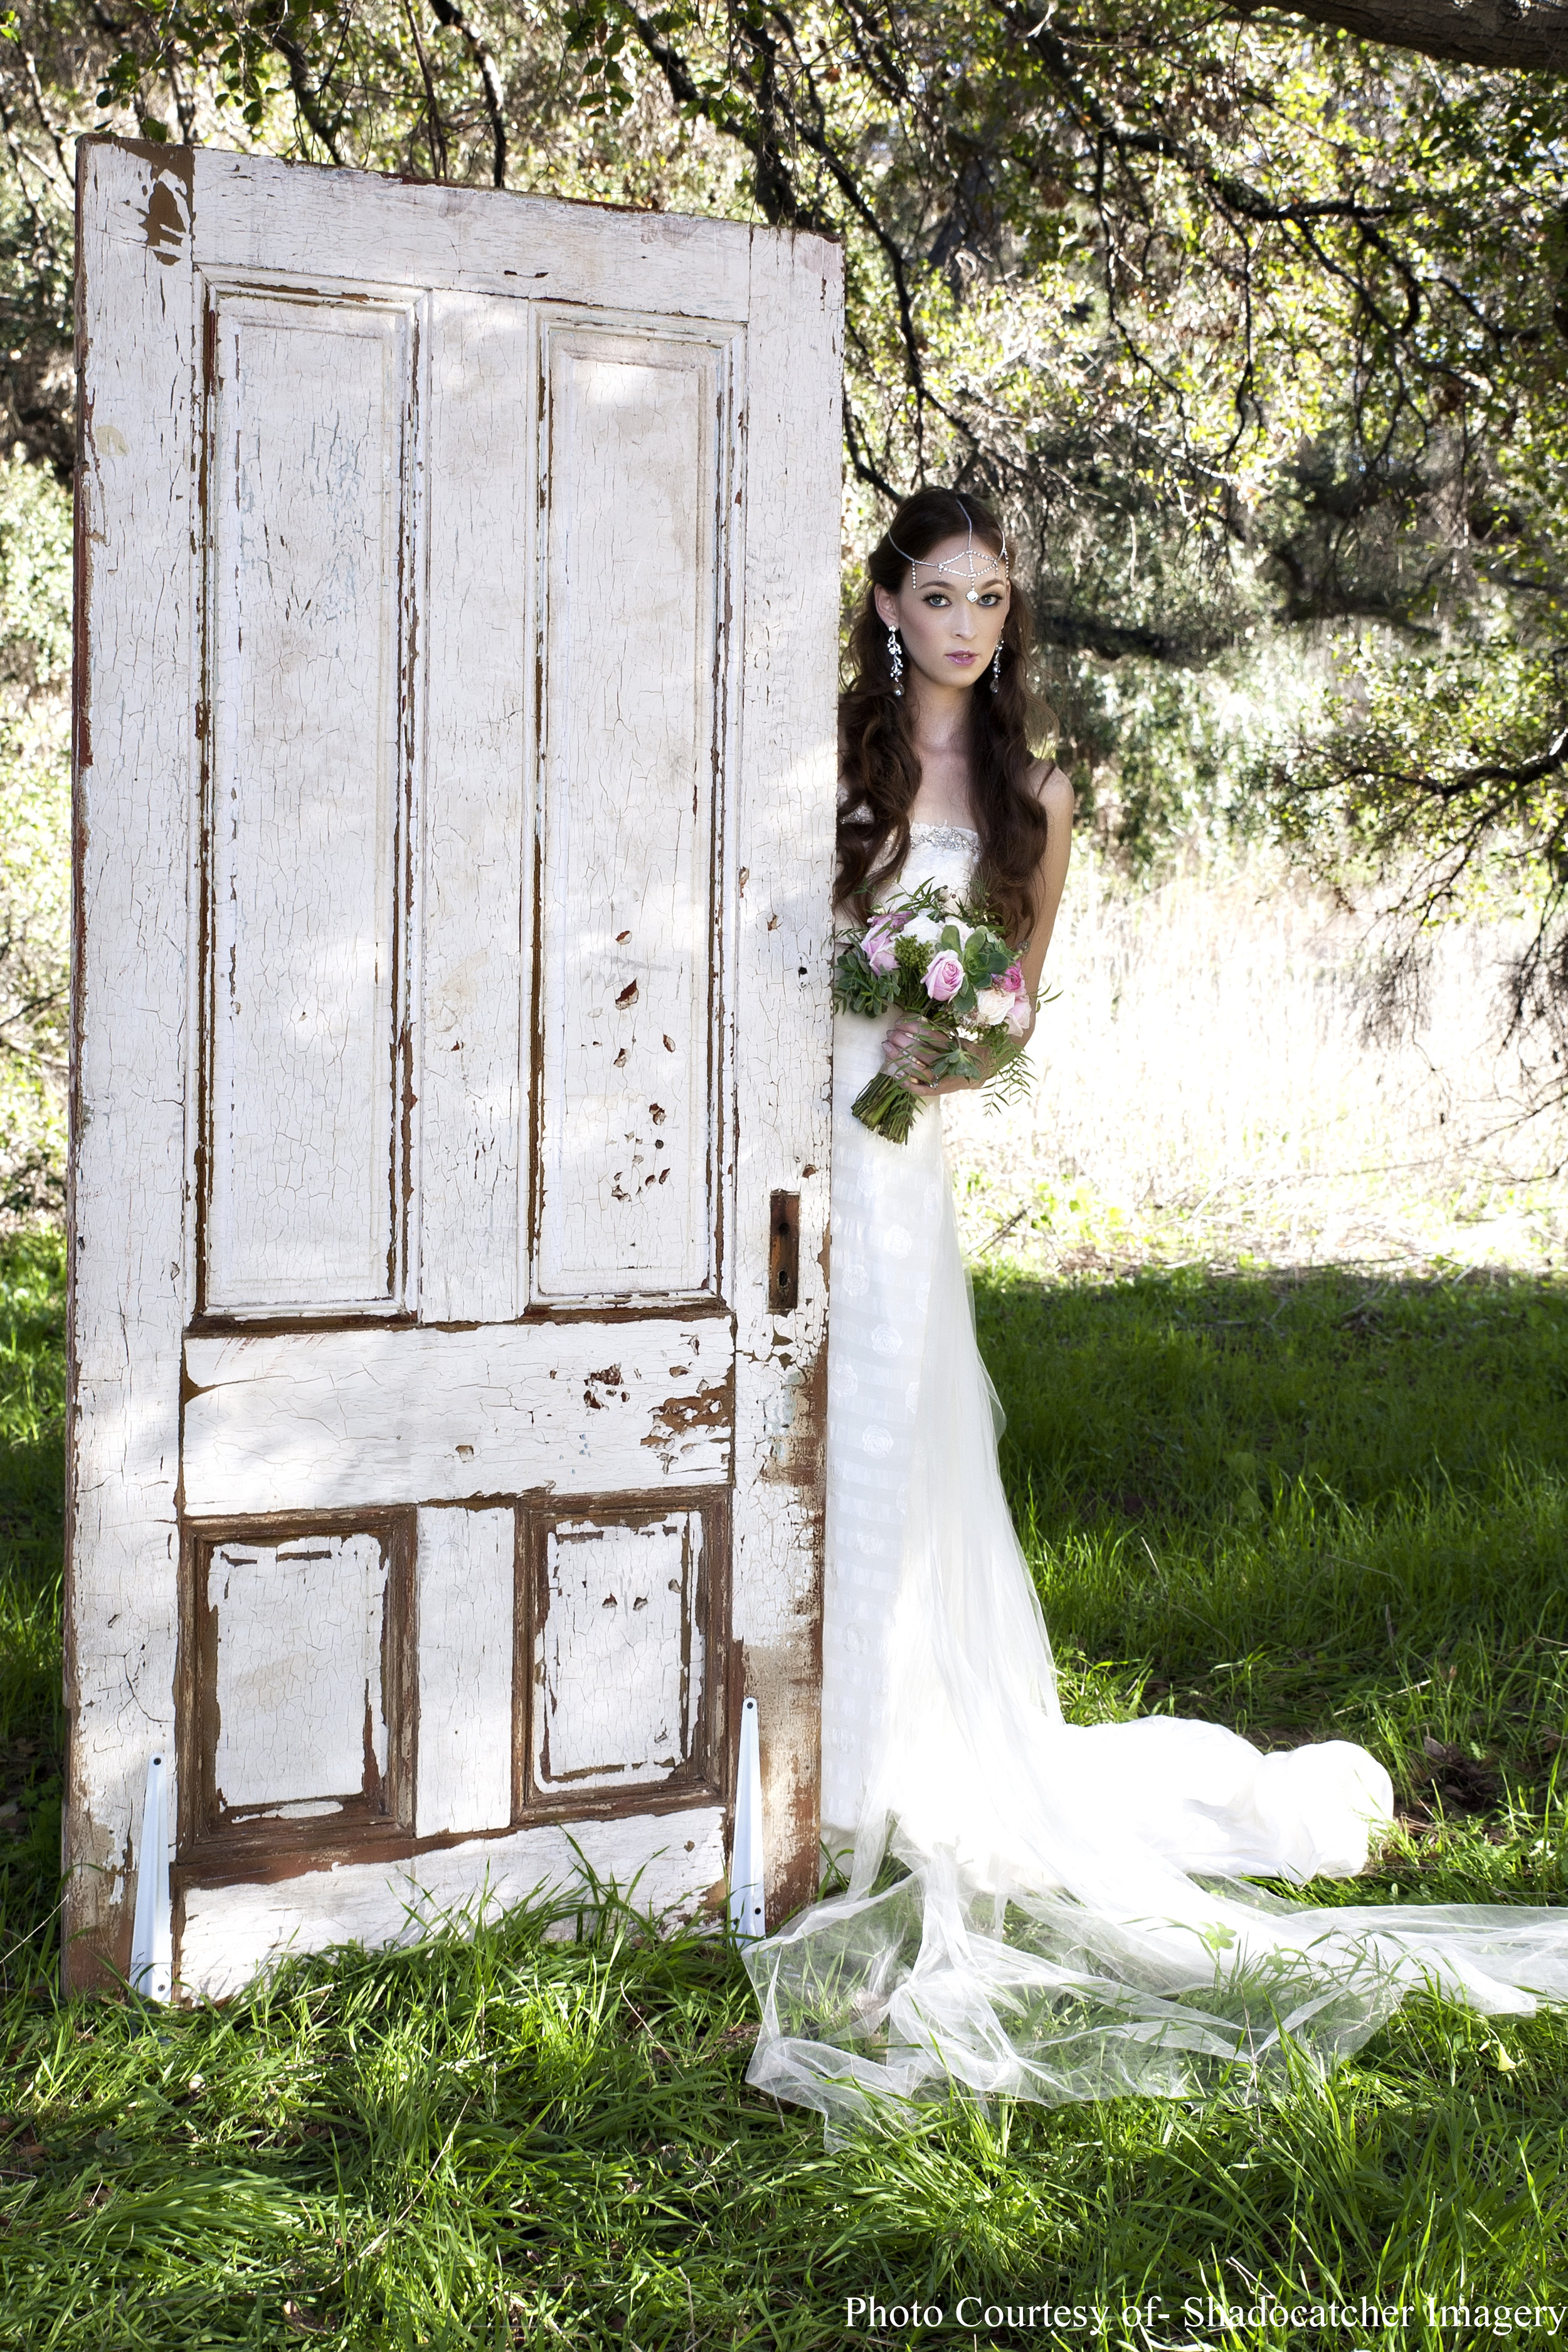 ShadowcatcherGalleryOne_SanDiegoWeddingPhotogrpaher_091.jpg